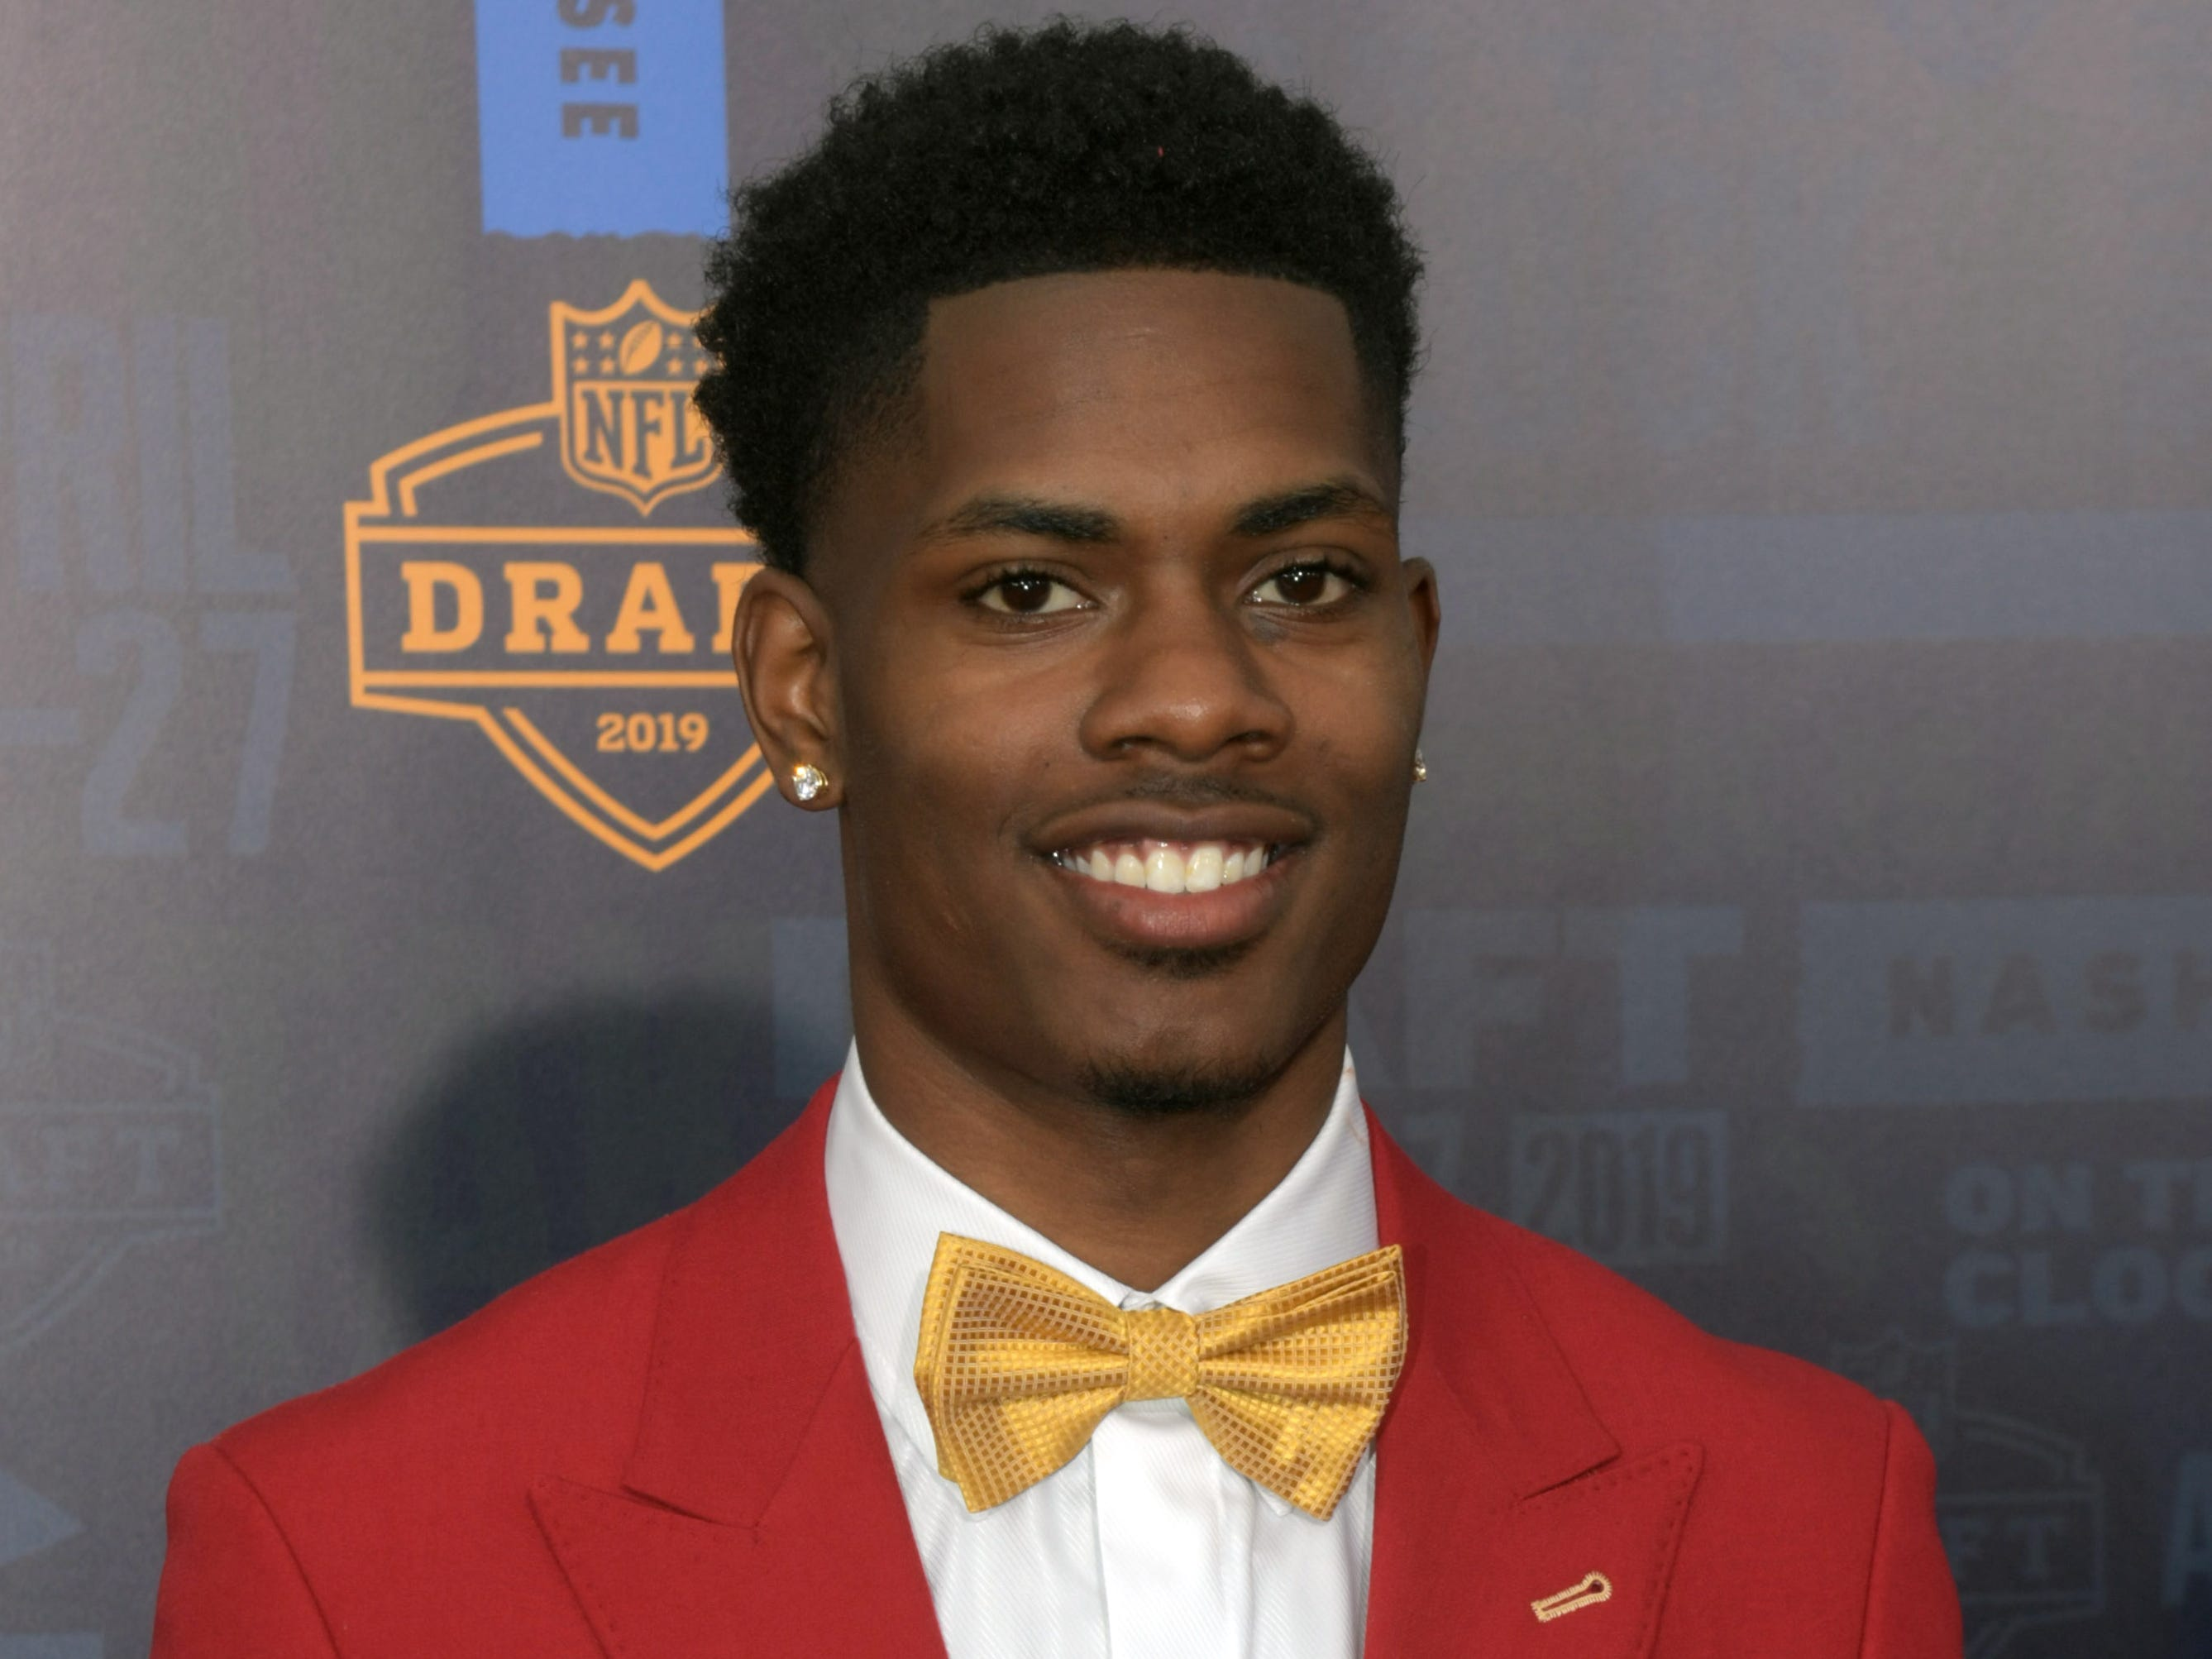 Apr 25, 2019; Nashville, TN, USA; Greedy Williams (Louisiana State) on the red carpet prior to the first round of the 2019 NFL Draft in Downtown Nashville.